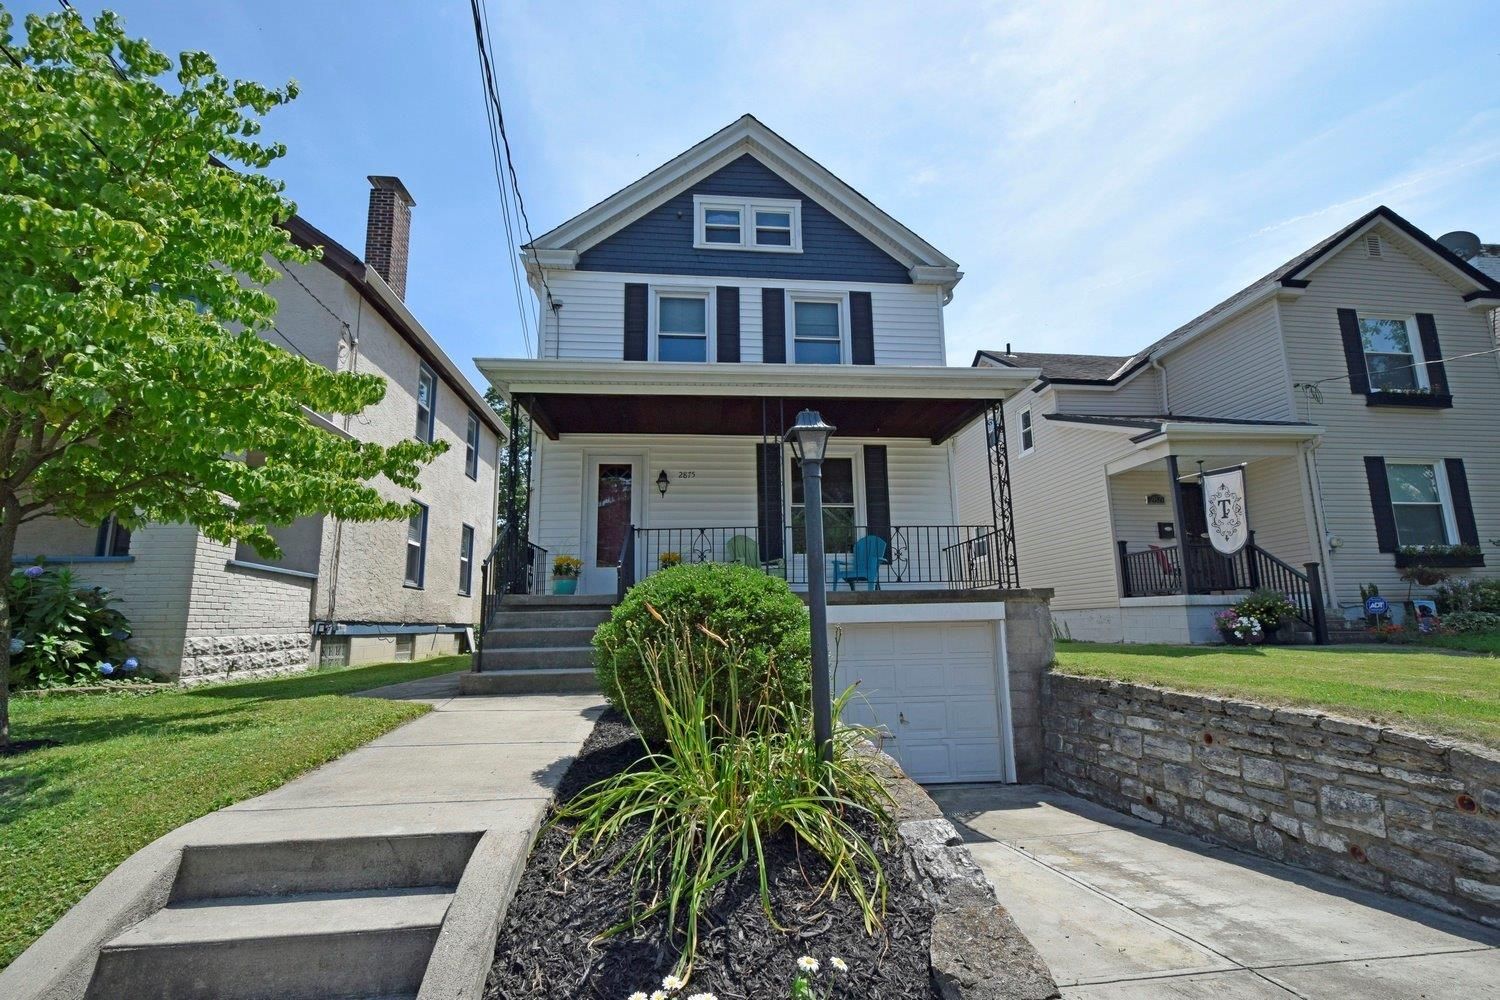 Located in heart of Oakley, steps to shops & restaurants.  Meticulously updated:  newer roof & windows, 2 HVACs + smart thermostats, wired for sound & internet, SS appliances, 1st floor laundry, master bedroom walk in closet w/premium shelving, garage & off street parking, 3rd floor finished bonus room.